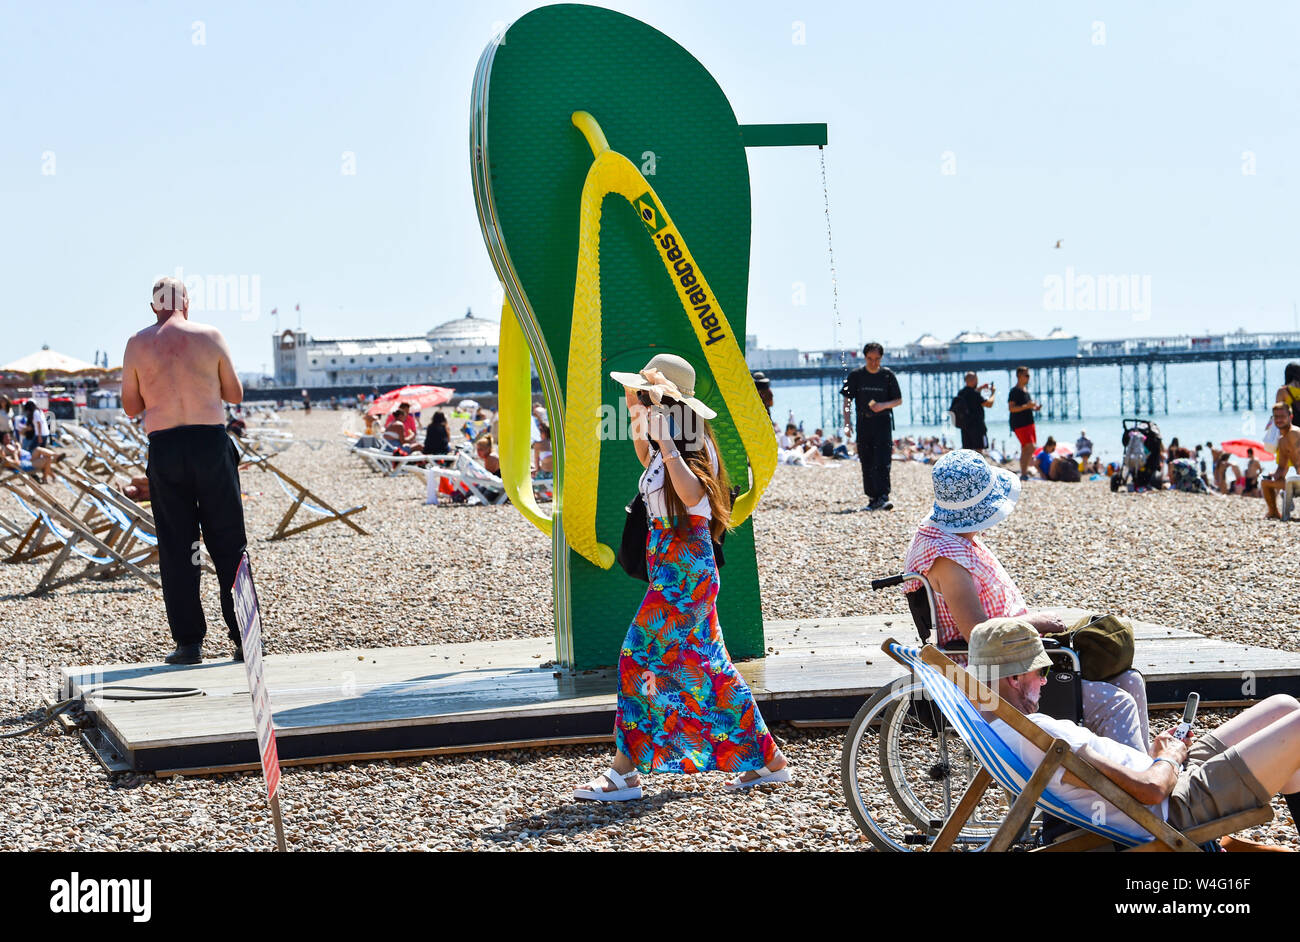 Brighton UK 23rd July 2019 - Sunseekers flock to Brighton Beach which is bathed in glorious hot sunshine today . Heatwave conditions are forecast for the South East of Britain with temperatures expected to reach the mid thirties today and over the next few days . Credit: Simon Dack / Alamy Live News Stock Photo